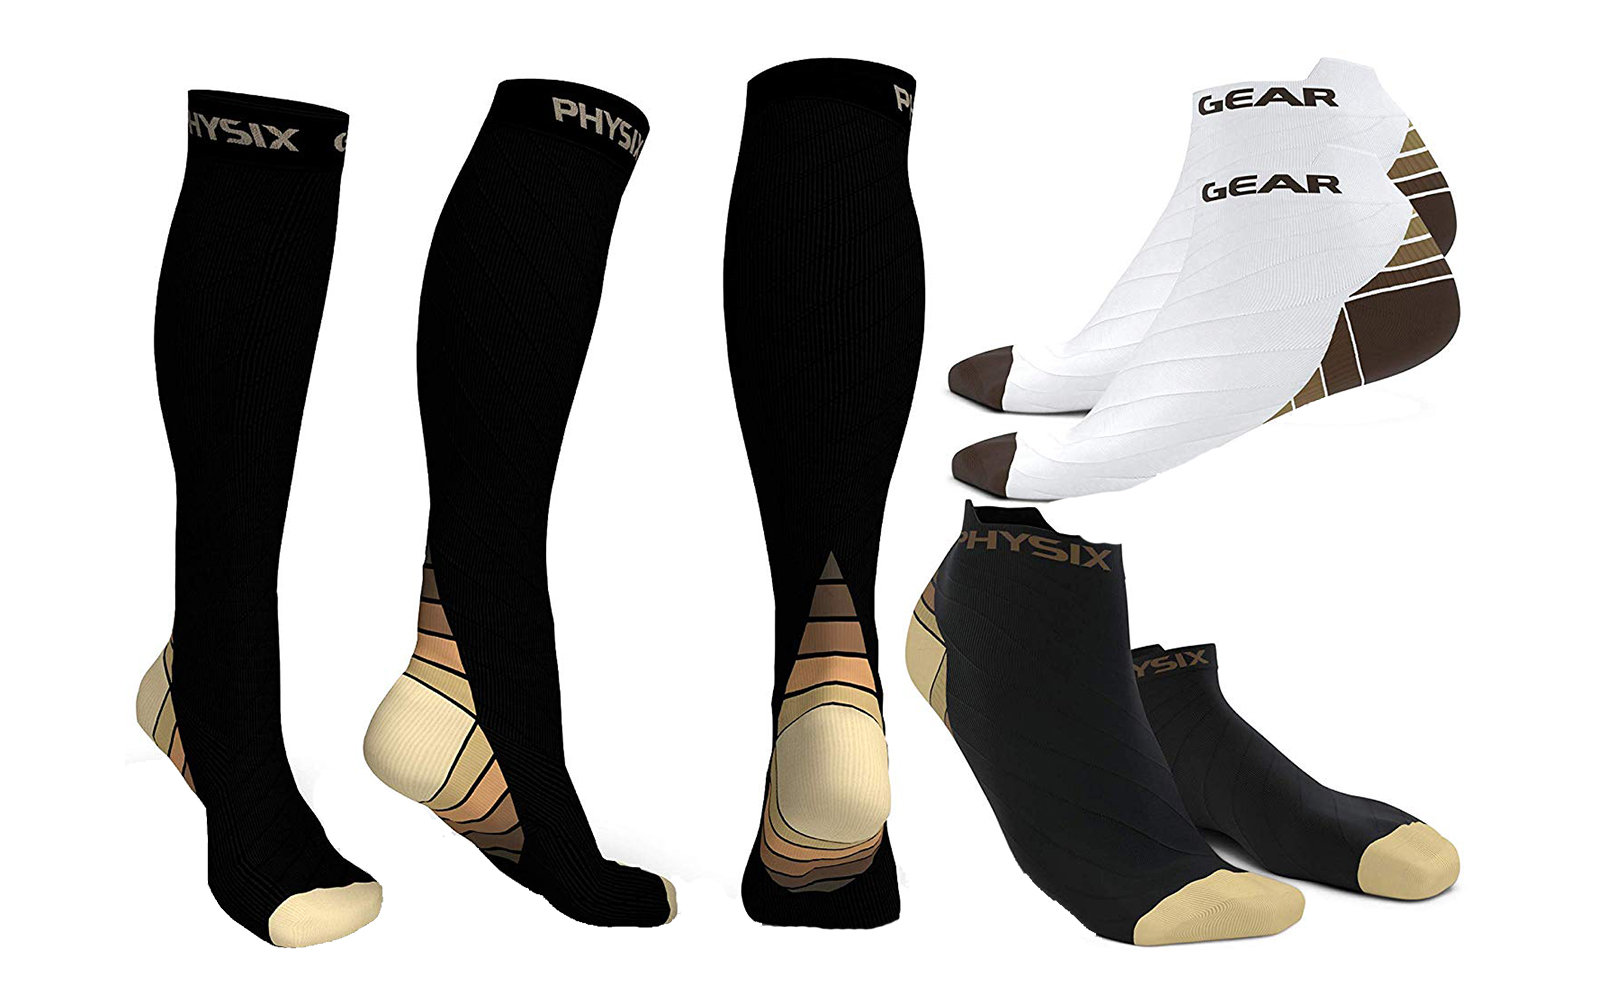 a3678cbf22a918 The 14 Best Compression Socks for Travel